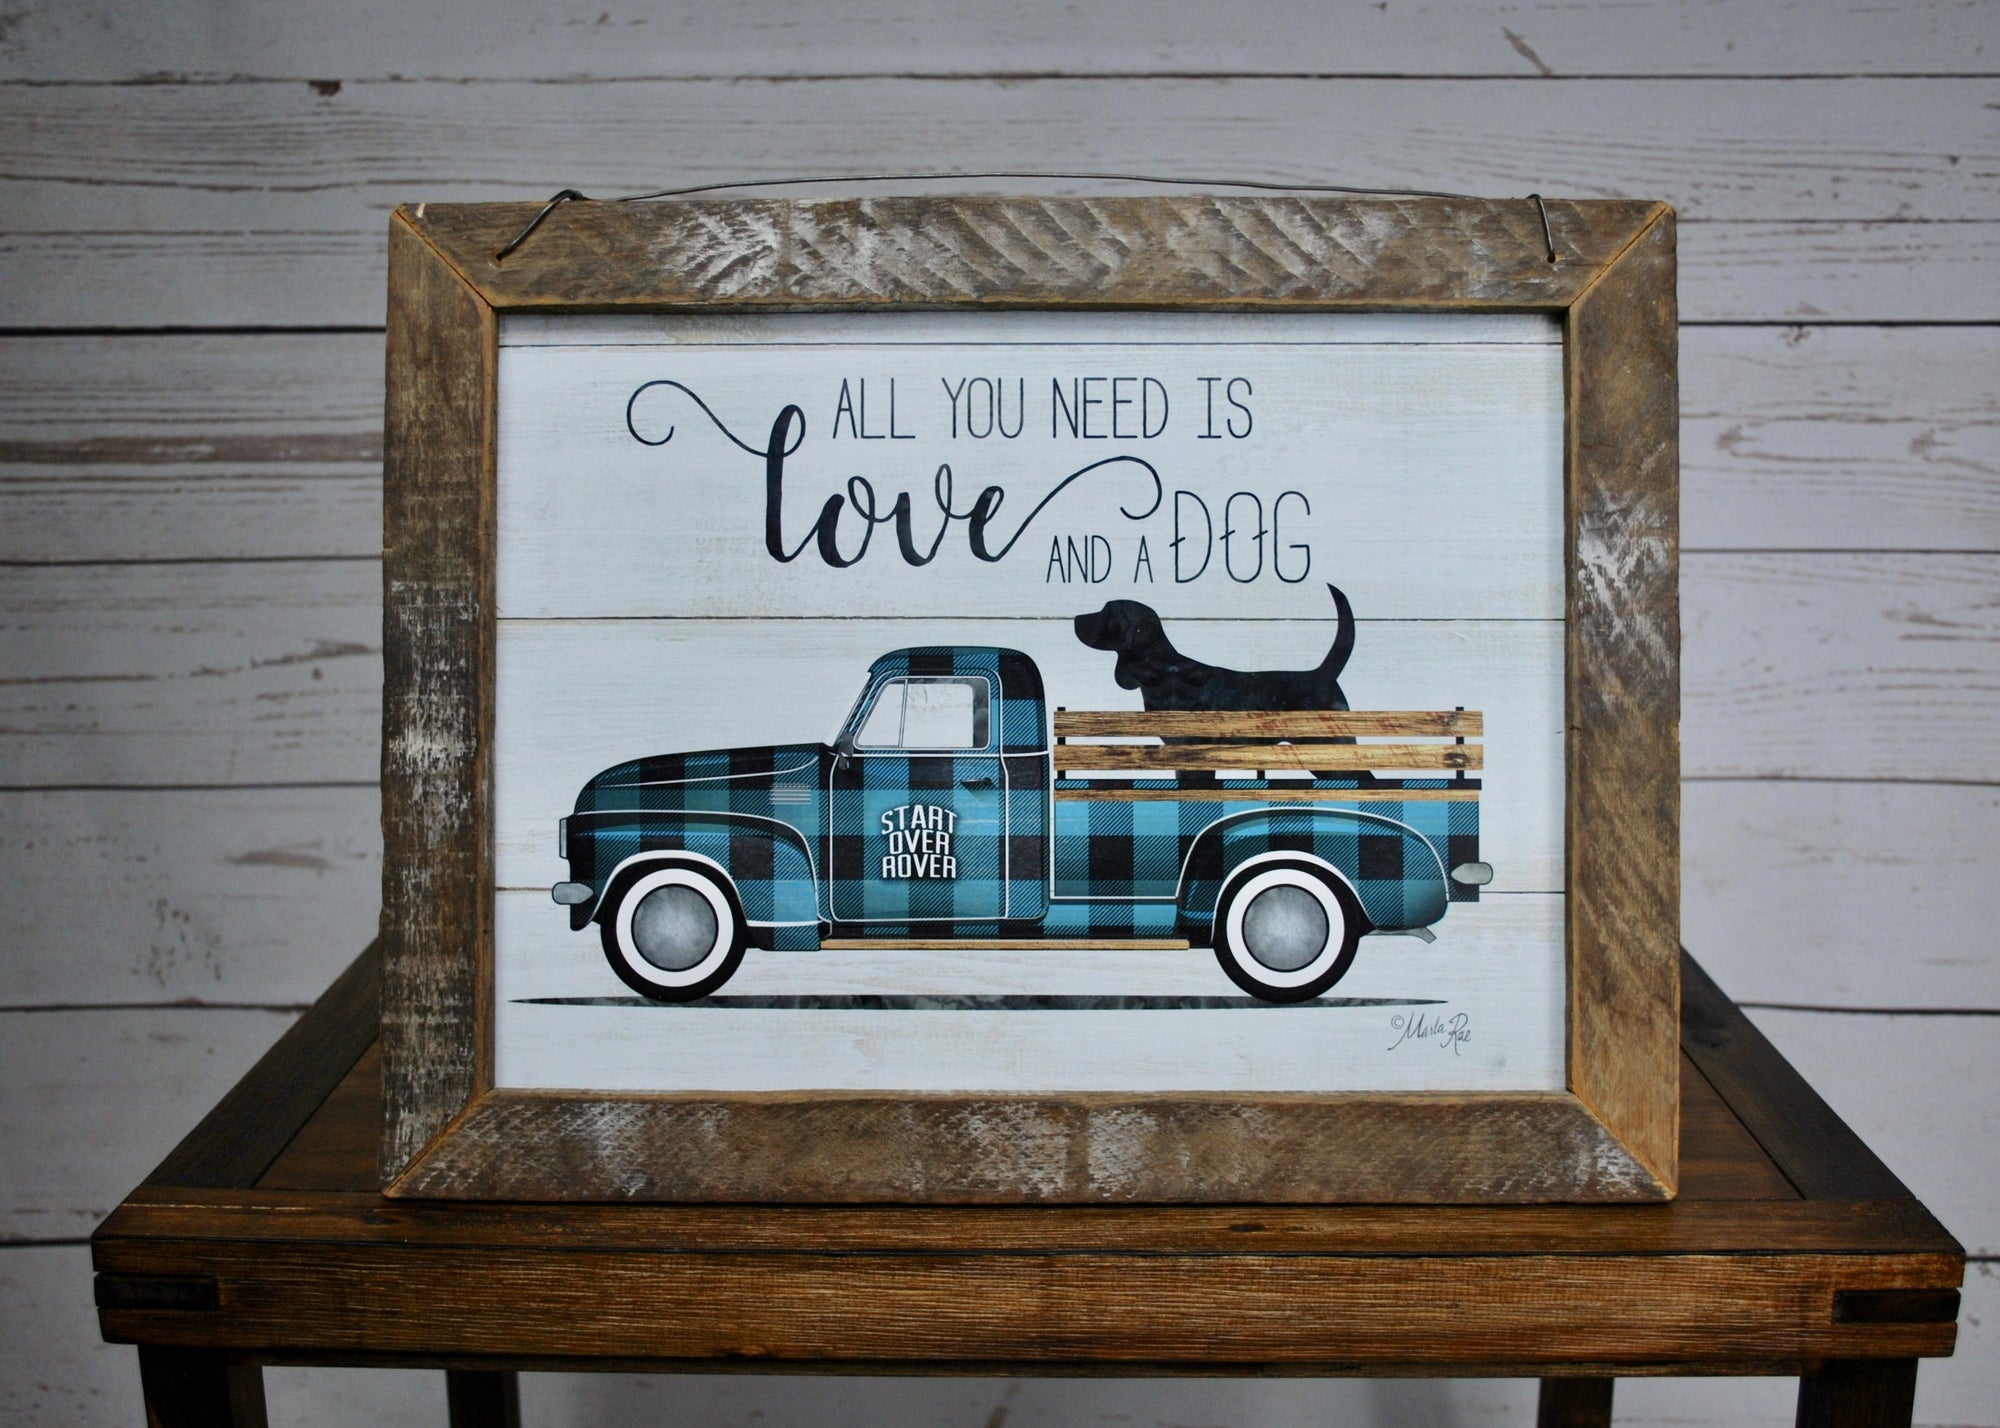 Dog Dad, Dog Decor, Dog Sign, All You Need is Love and a Dog, Farmhouse Sign, Pet Gifts, Dog Gifts, Dog Decor, Rustic Truck, Rustic Truck Decor, fathers day gifts